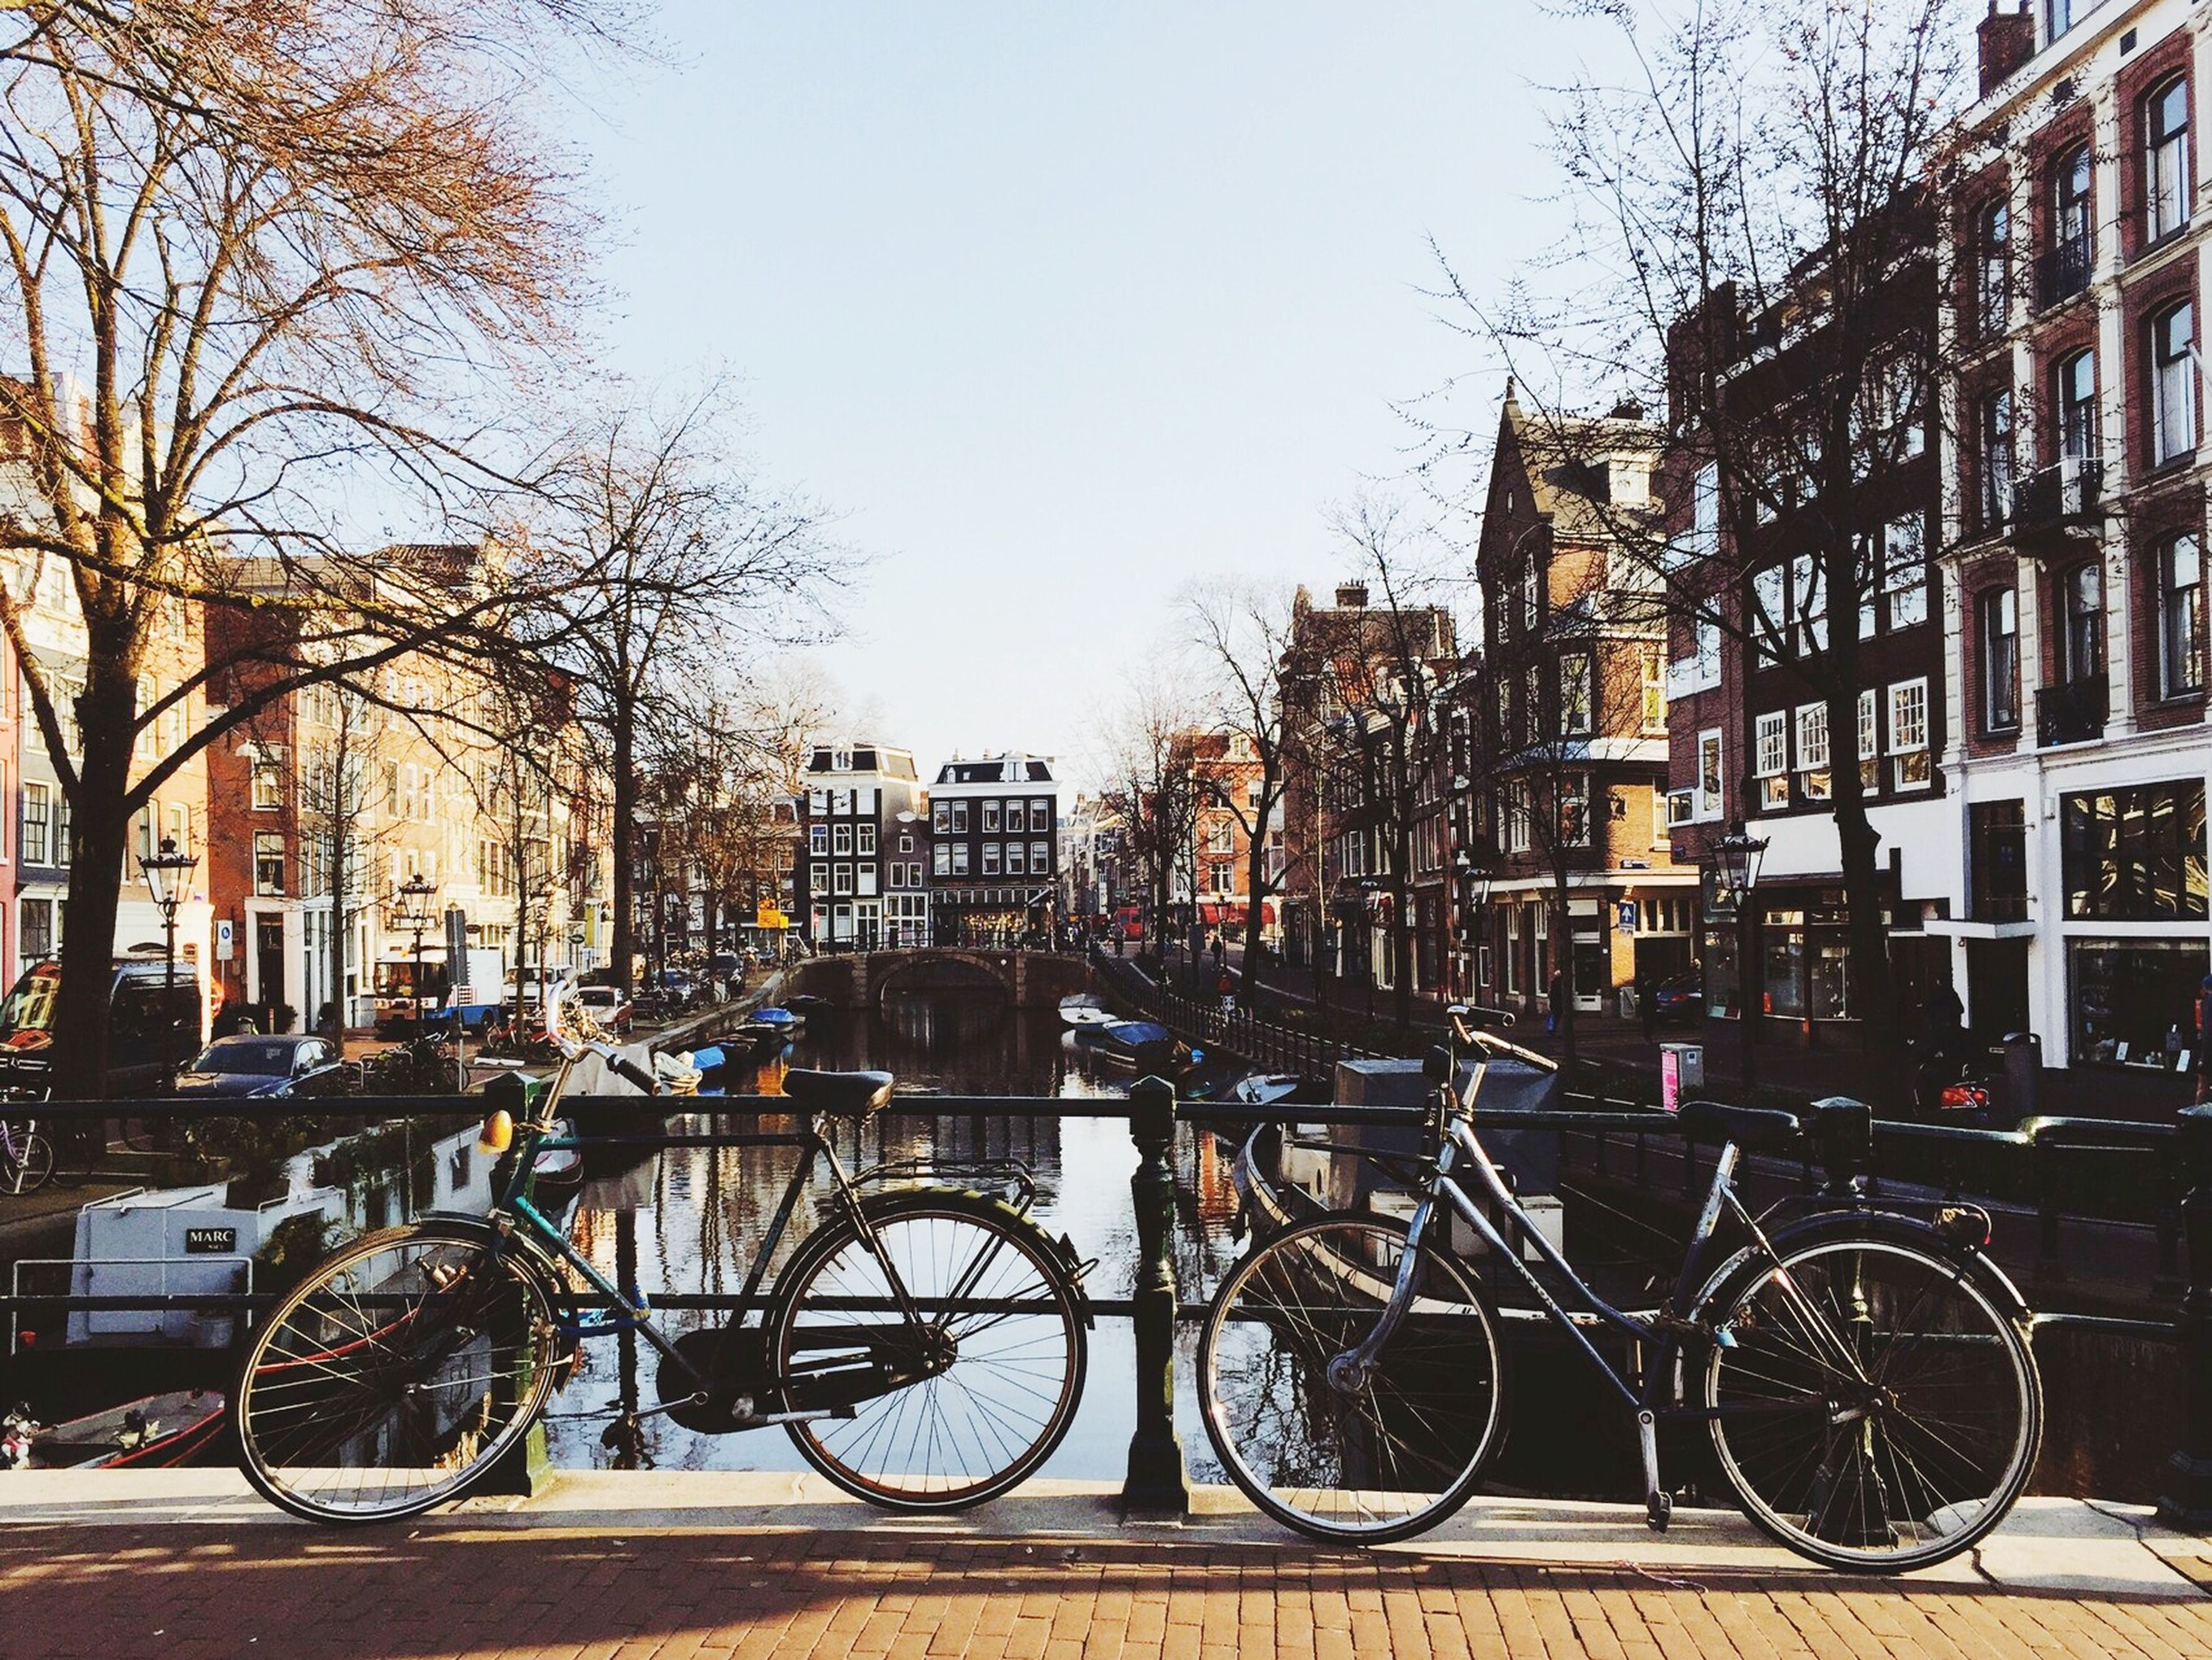 bicycle, building exterior, transportation, mode of transport, architecture, land vehicle, built structure, parked, parking, city, stationary, street, tree, car, clear sky, railing, canal, residential structure, city life, residential building